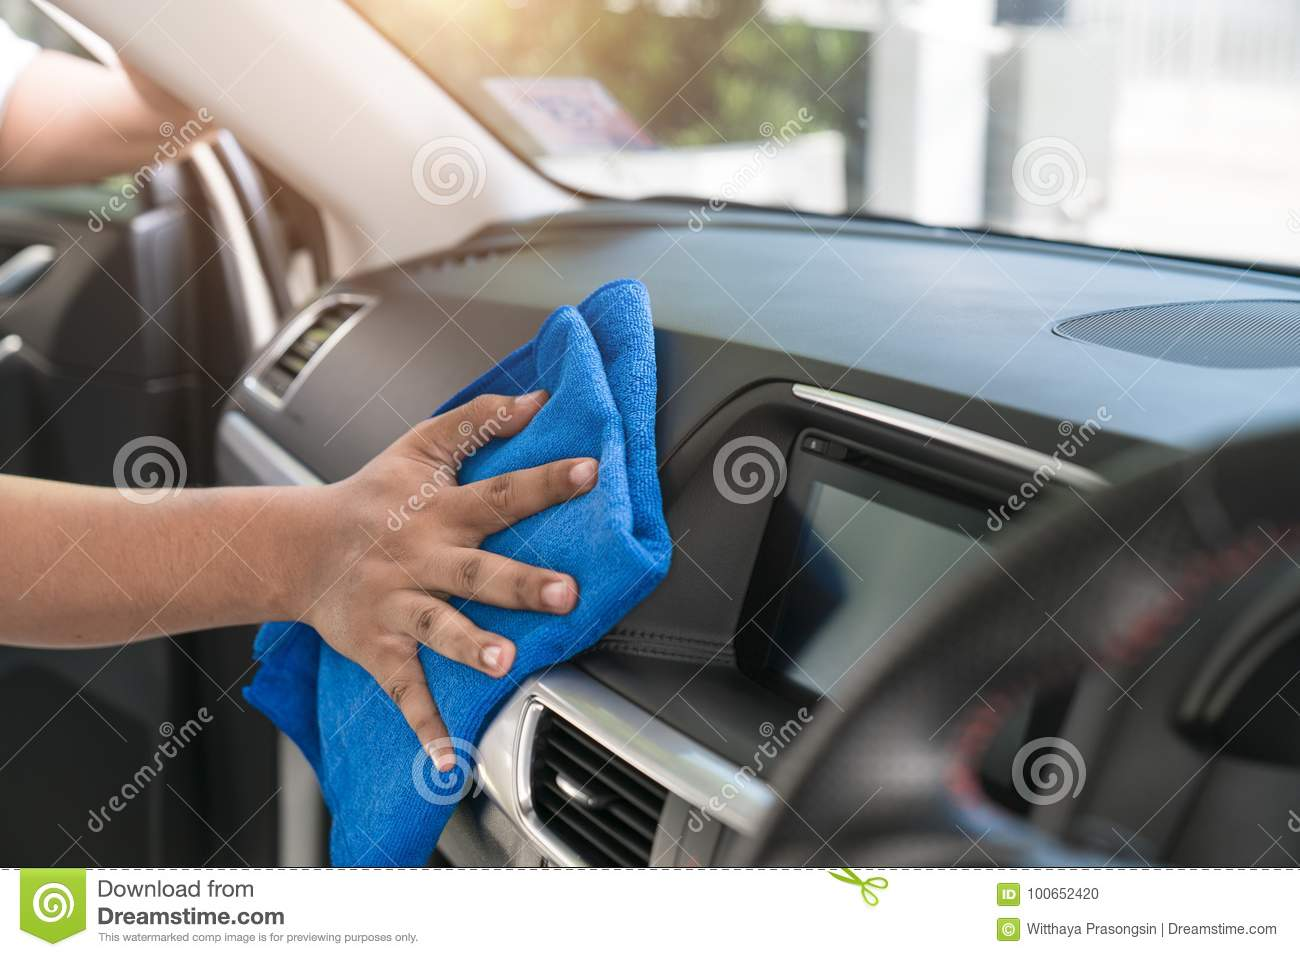 car consoles car interior cleaners microfiber and how to clean